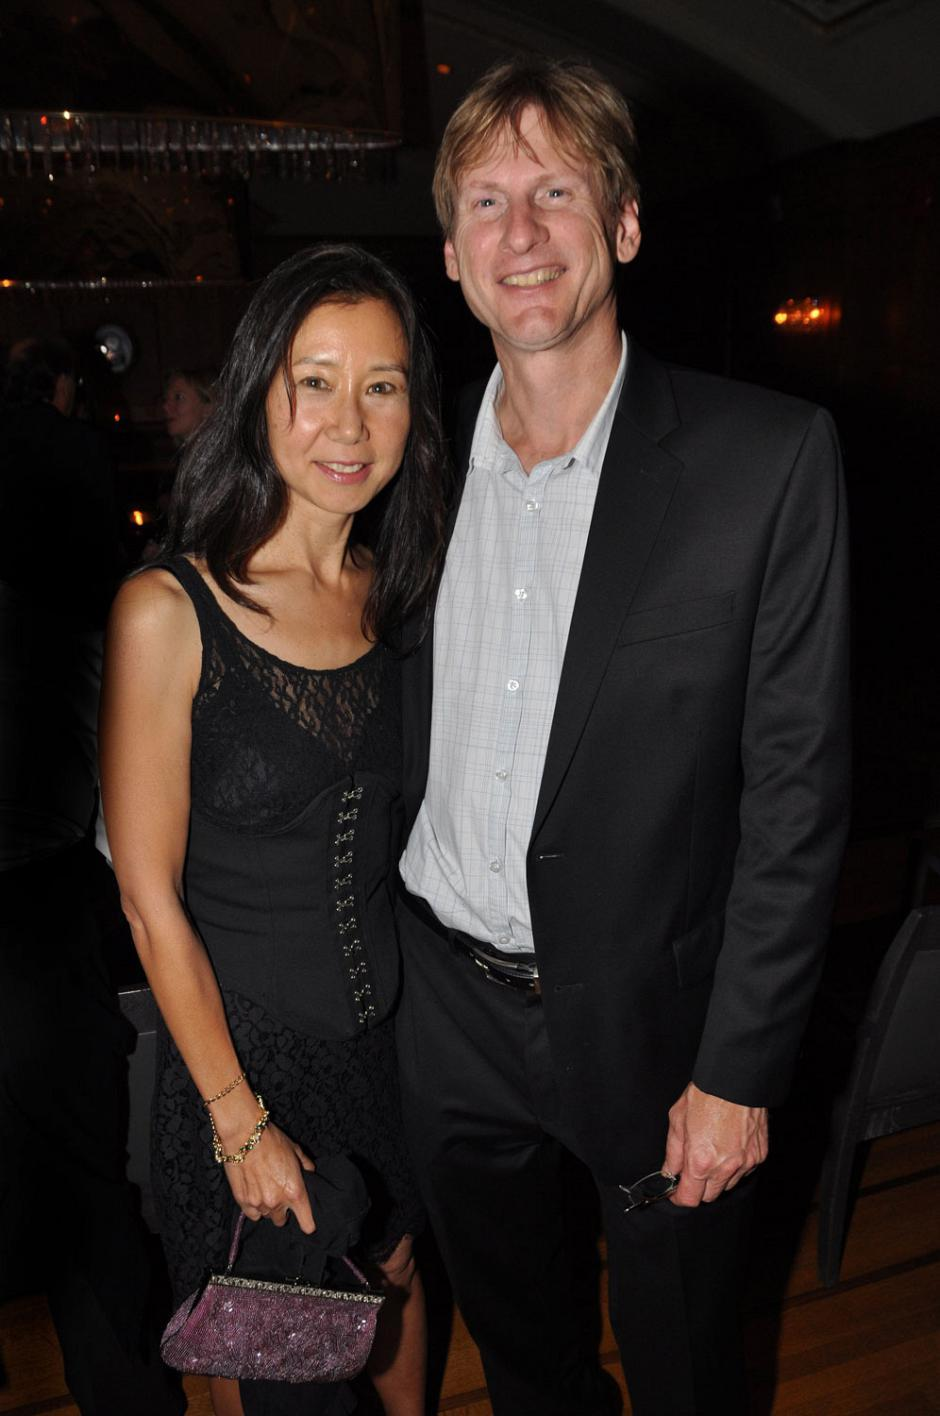 Helen Yagi, VIFF Dragons & Tigers publicist; and Gordon Rischanek, Intune Property Development CEO.